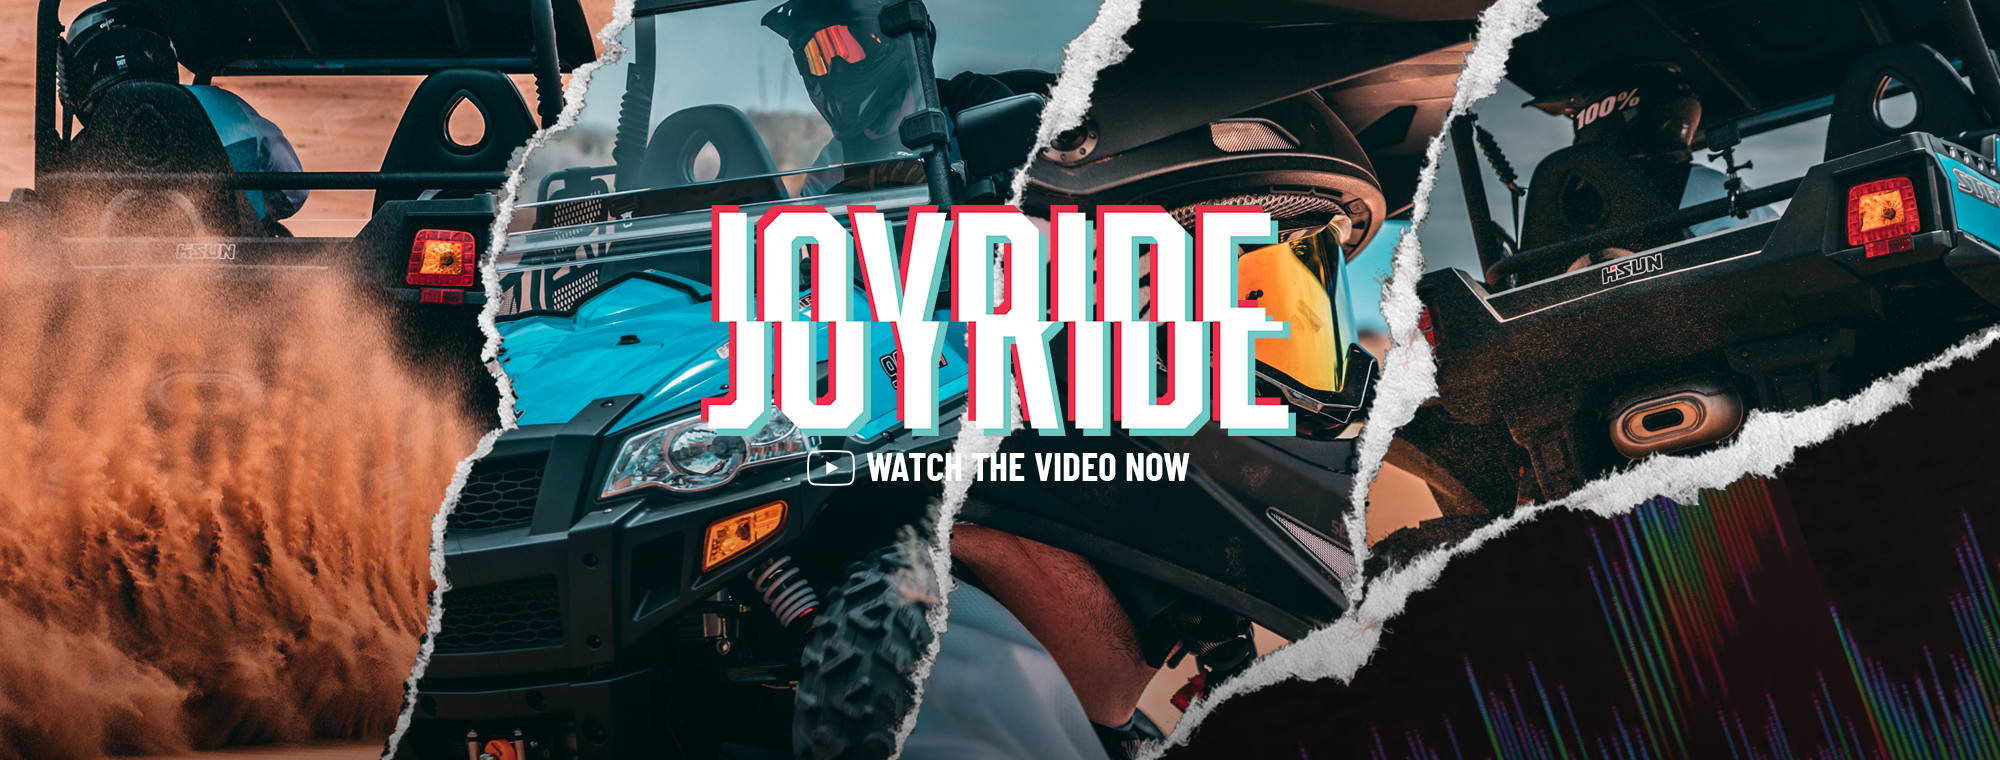 Joyride: Strike 900 - Red Sands, El Paso